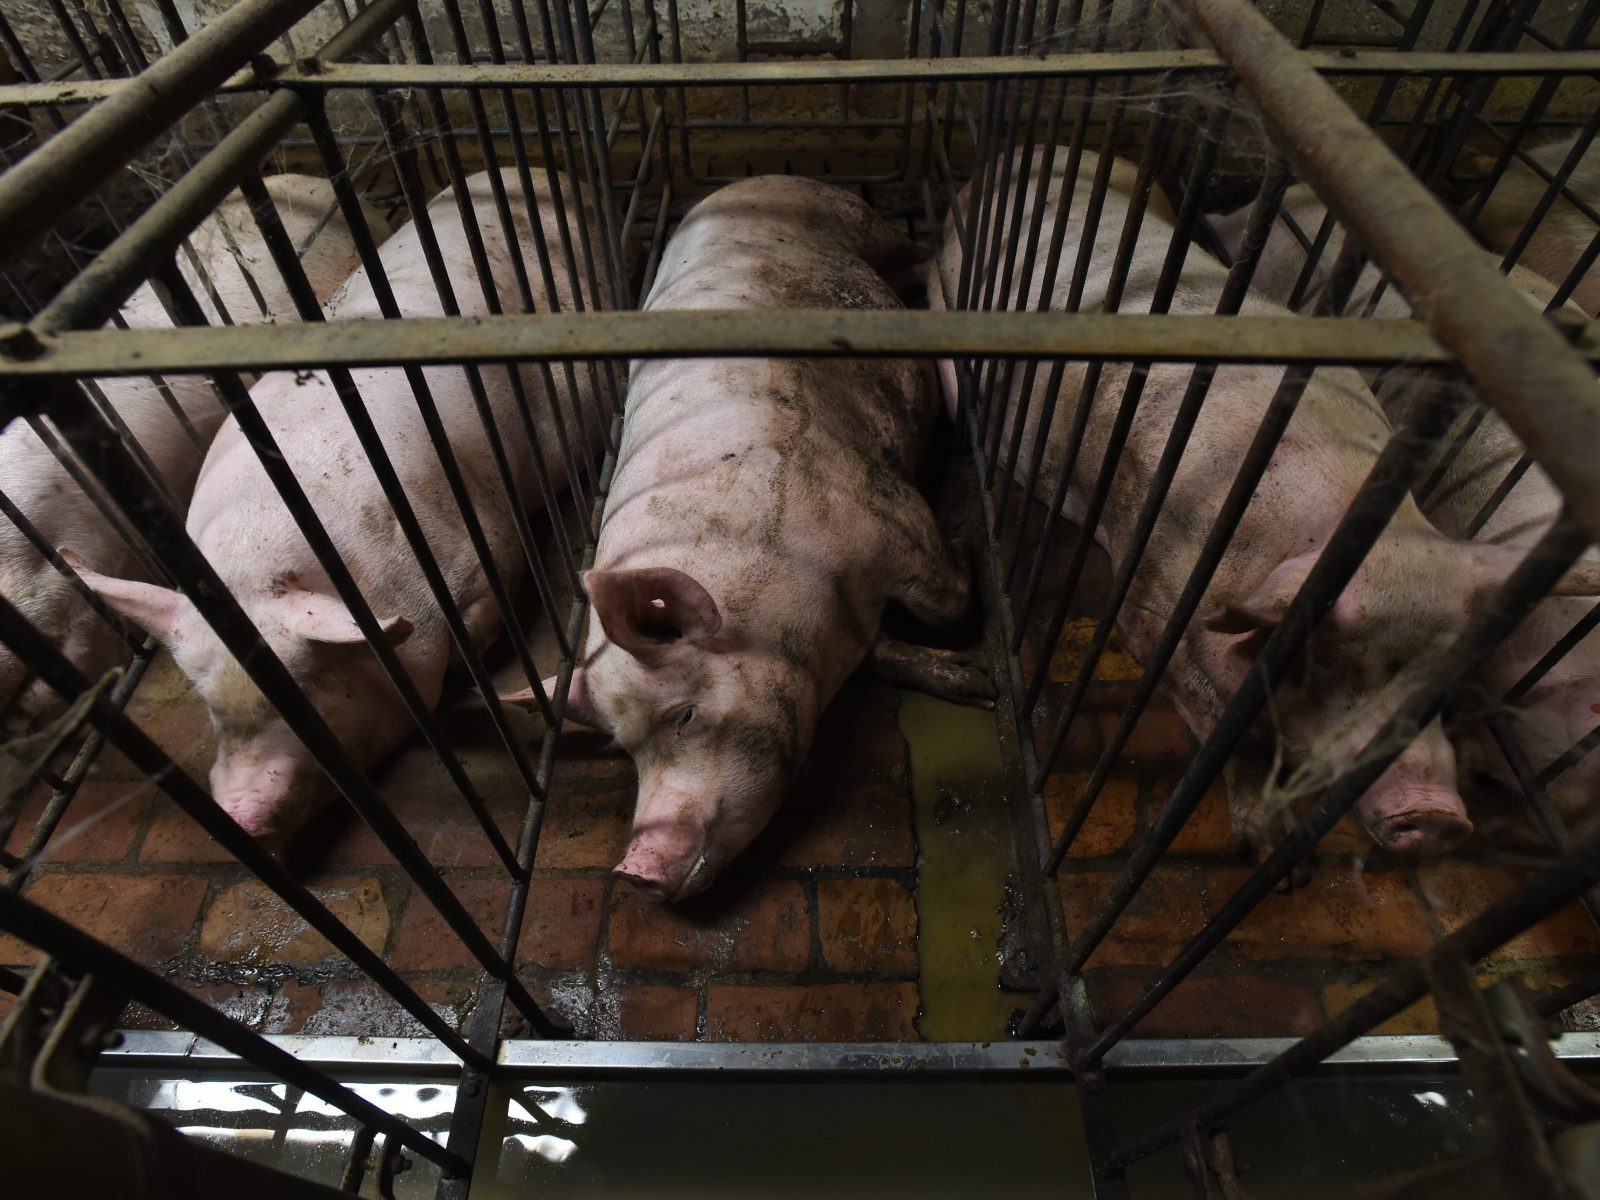 Line of pigs, confined and isolated by metal bars